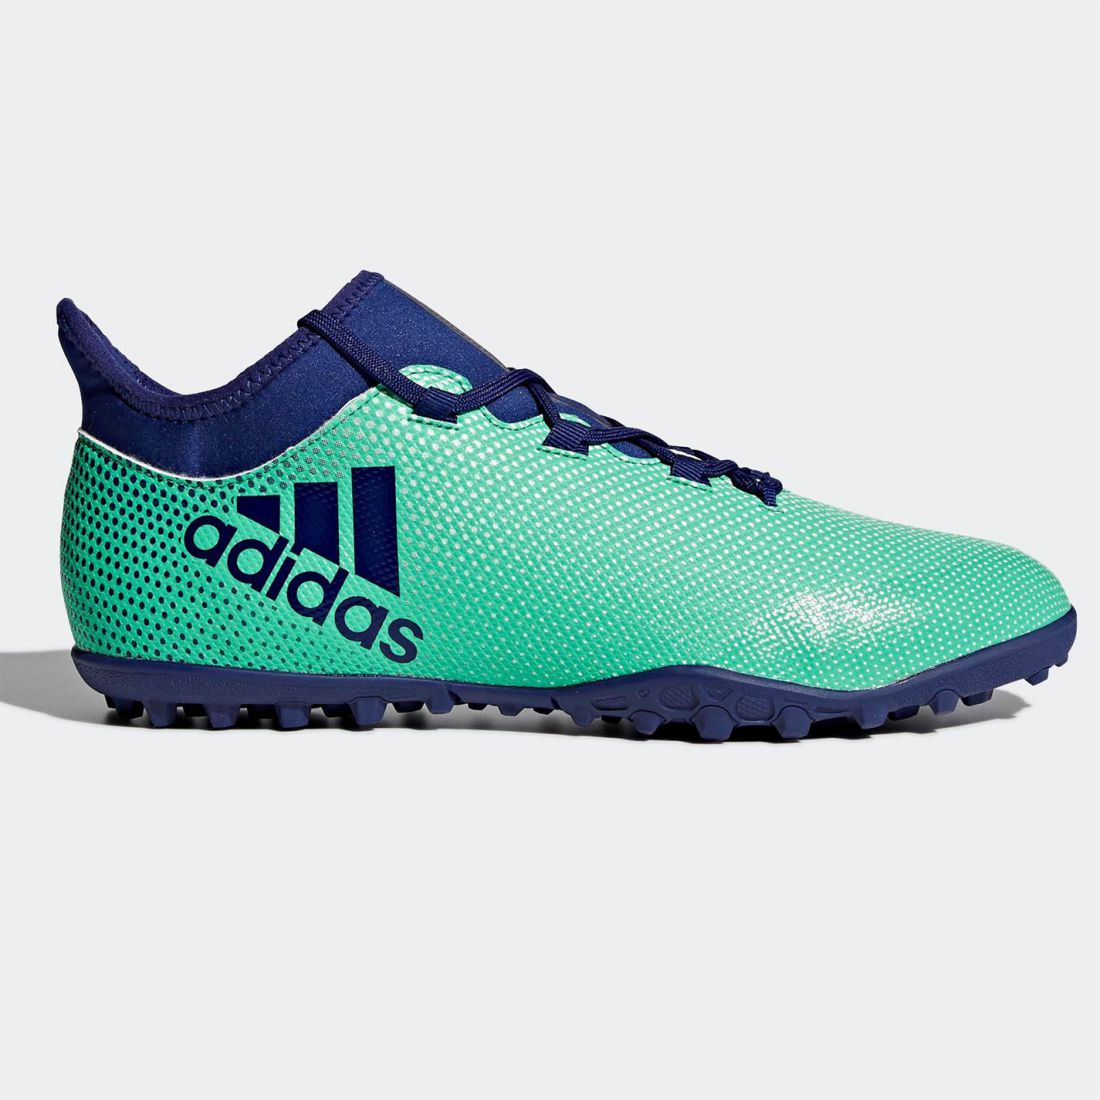 adidas Mens X 17.3 Astro Turf Trainers Football Boots Lace Up ... d014795baf0b